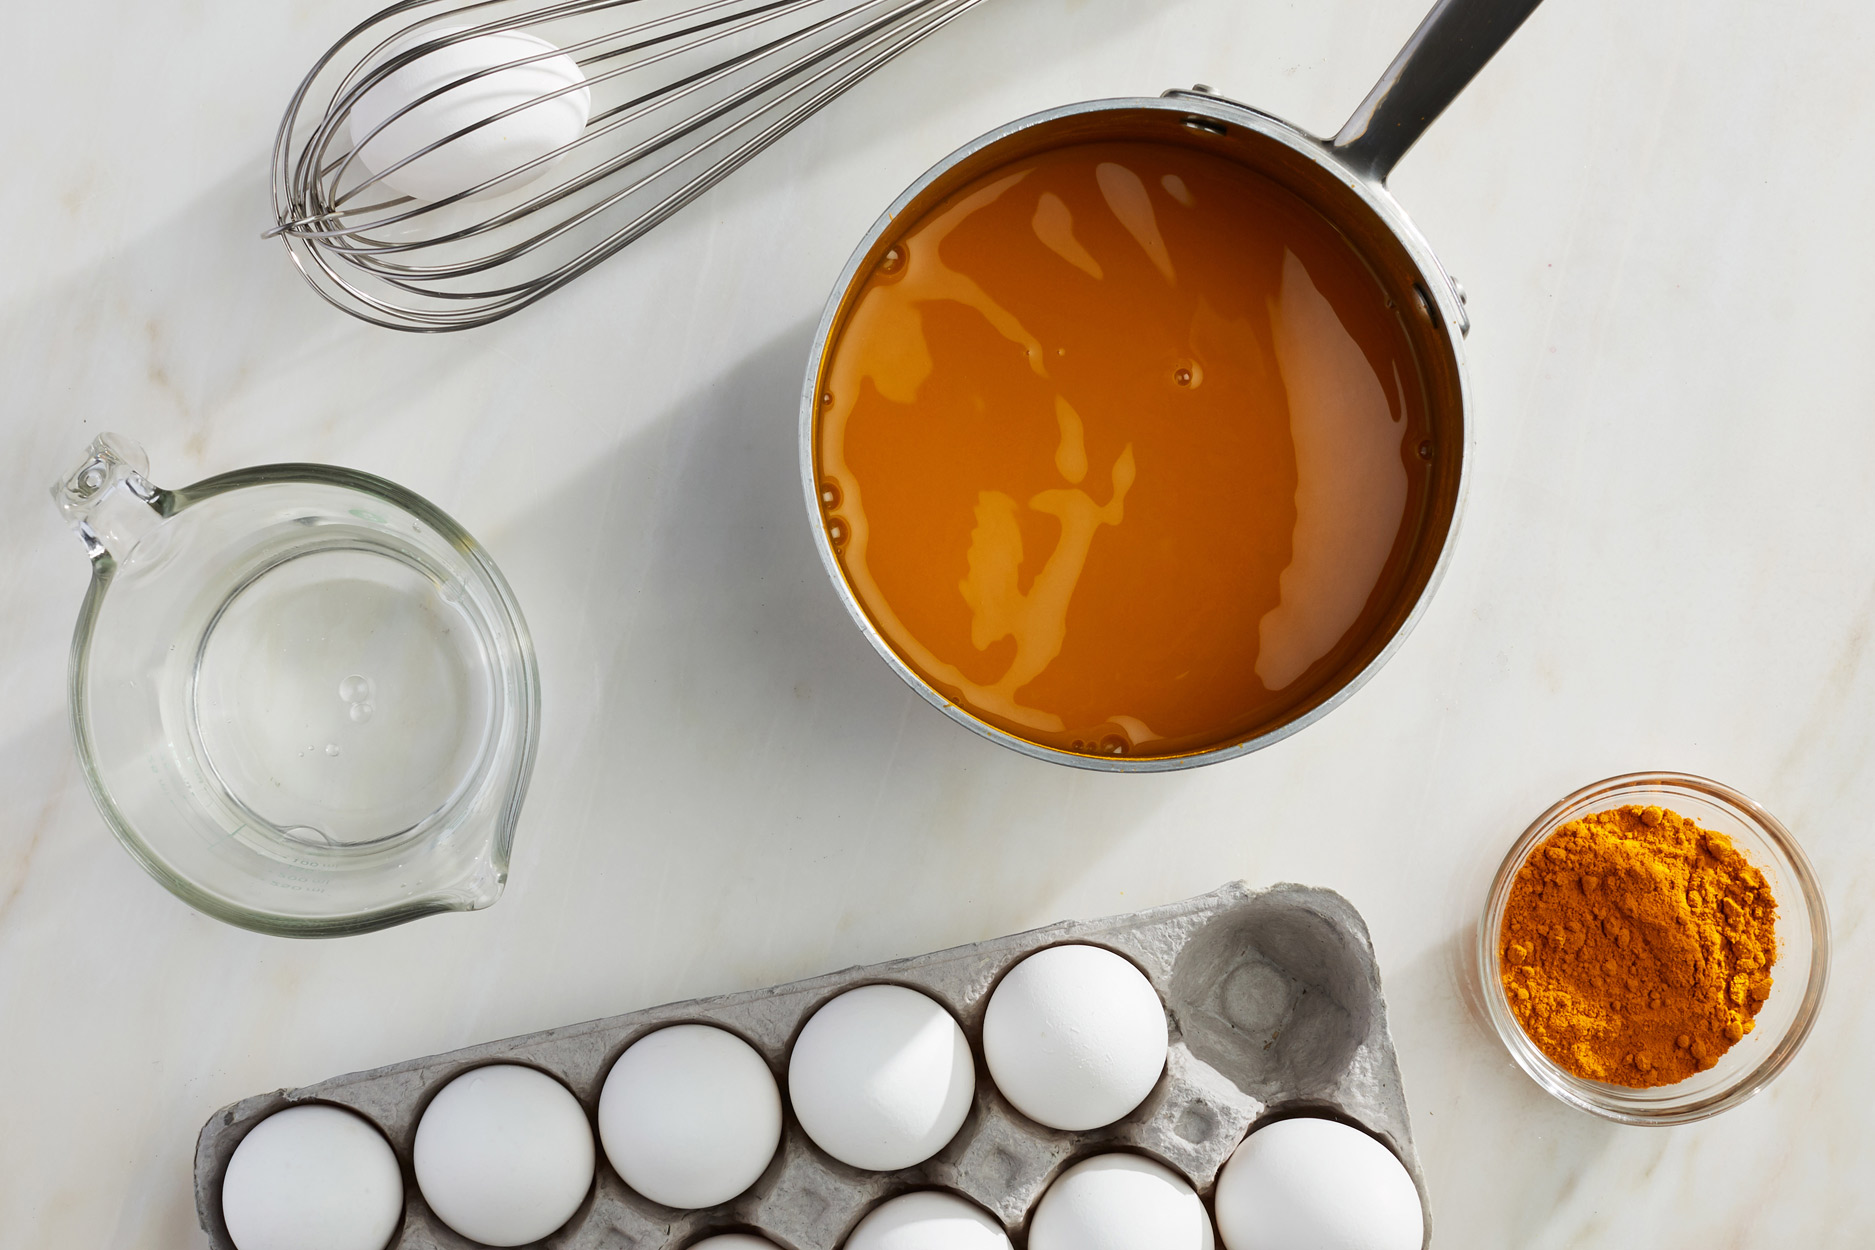 a carton of eggs and a pot with an orange powder mixture